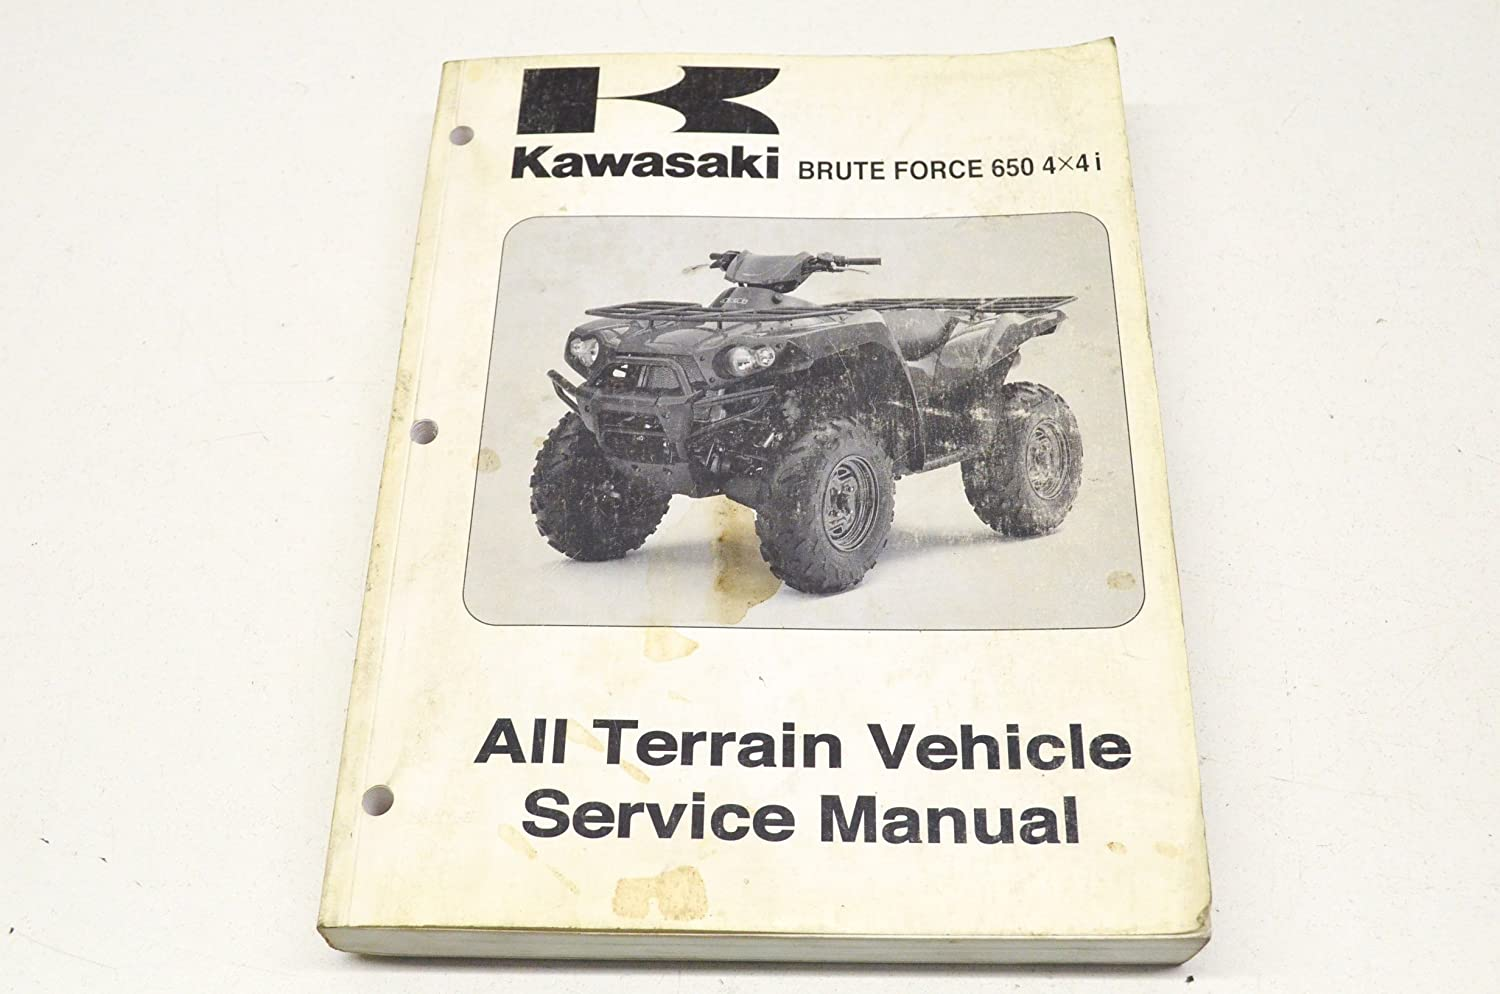 Amazon.com: Kawasaki 99924-1363-31 Service Manual 06 Brute Force 6504x4 i  QTY 1: Automotive